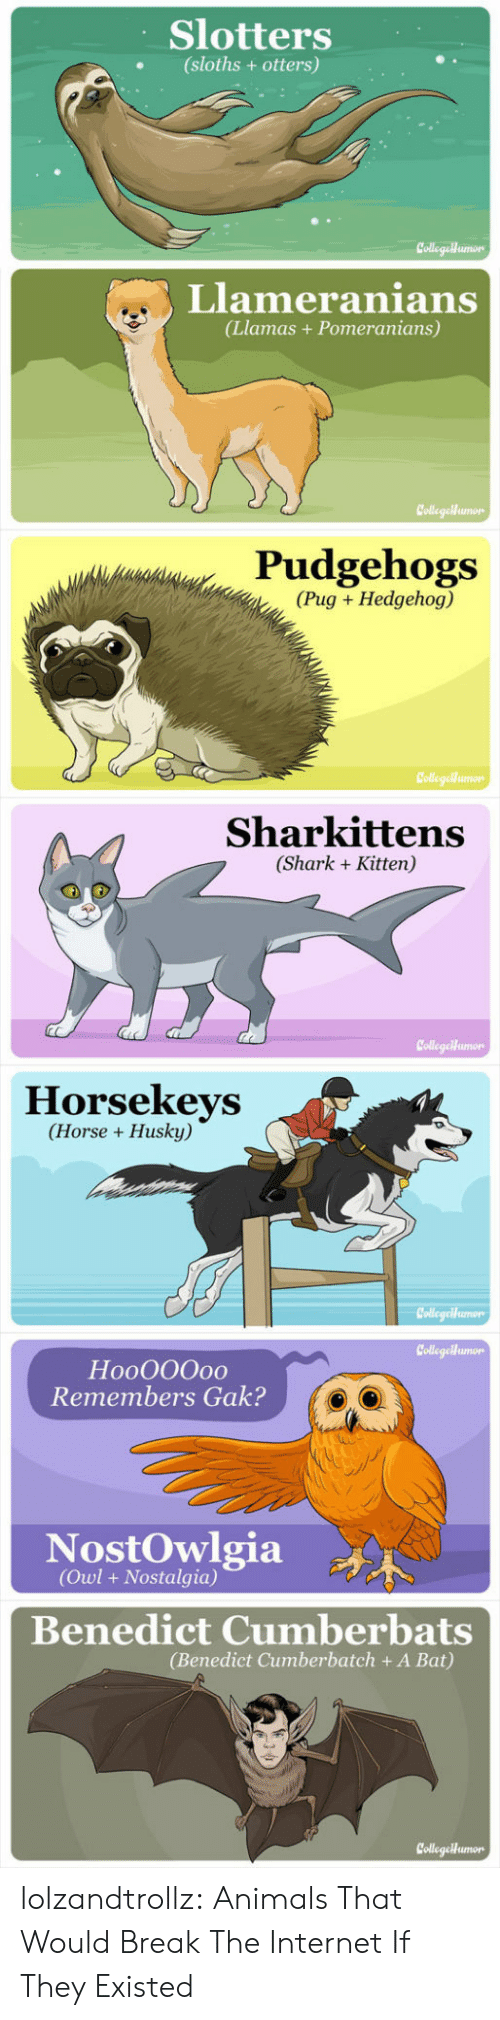 Animals, Internet, and Nostalgia: Slotters  (sloths + otters)  CollegaHumon  Llameranians  (Llamas+Pomeranians)  CollegeMumon  Pudgehogs  (Pug Hedgehog)  Collegeiumo  Sharkittens  (Shark Kitten)  CollegeHumor  Horsekeys  (Horse Husky)  Collegeumon  CollegeHumon  HooO00o0  Remembers Gak?  NostOwlgia  (Owl+ Nostalgia)  Benedict Cumberbats  (Benedict Cumberbatch + A Bat)  CollegetHumon lolzandtrollz:  Animals That Would Break The Internet If They Existed